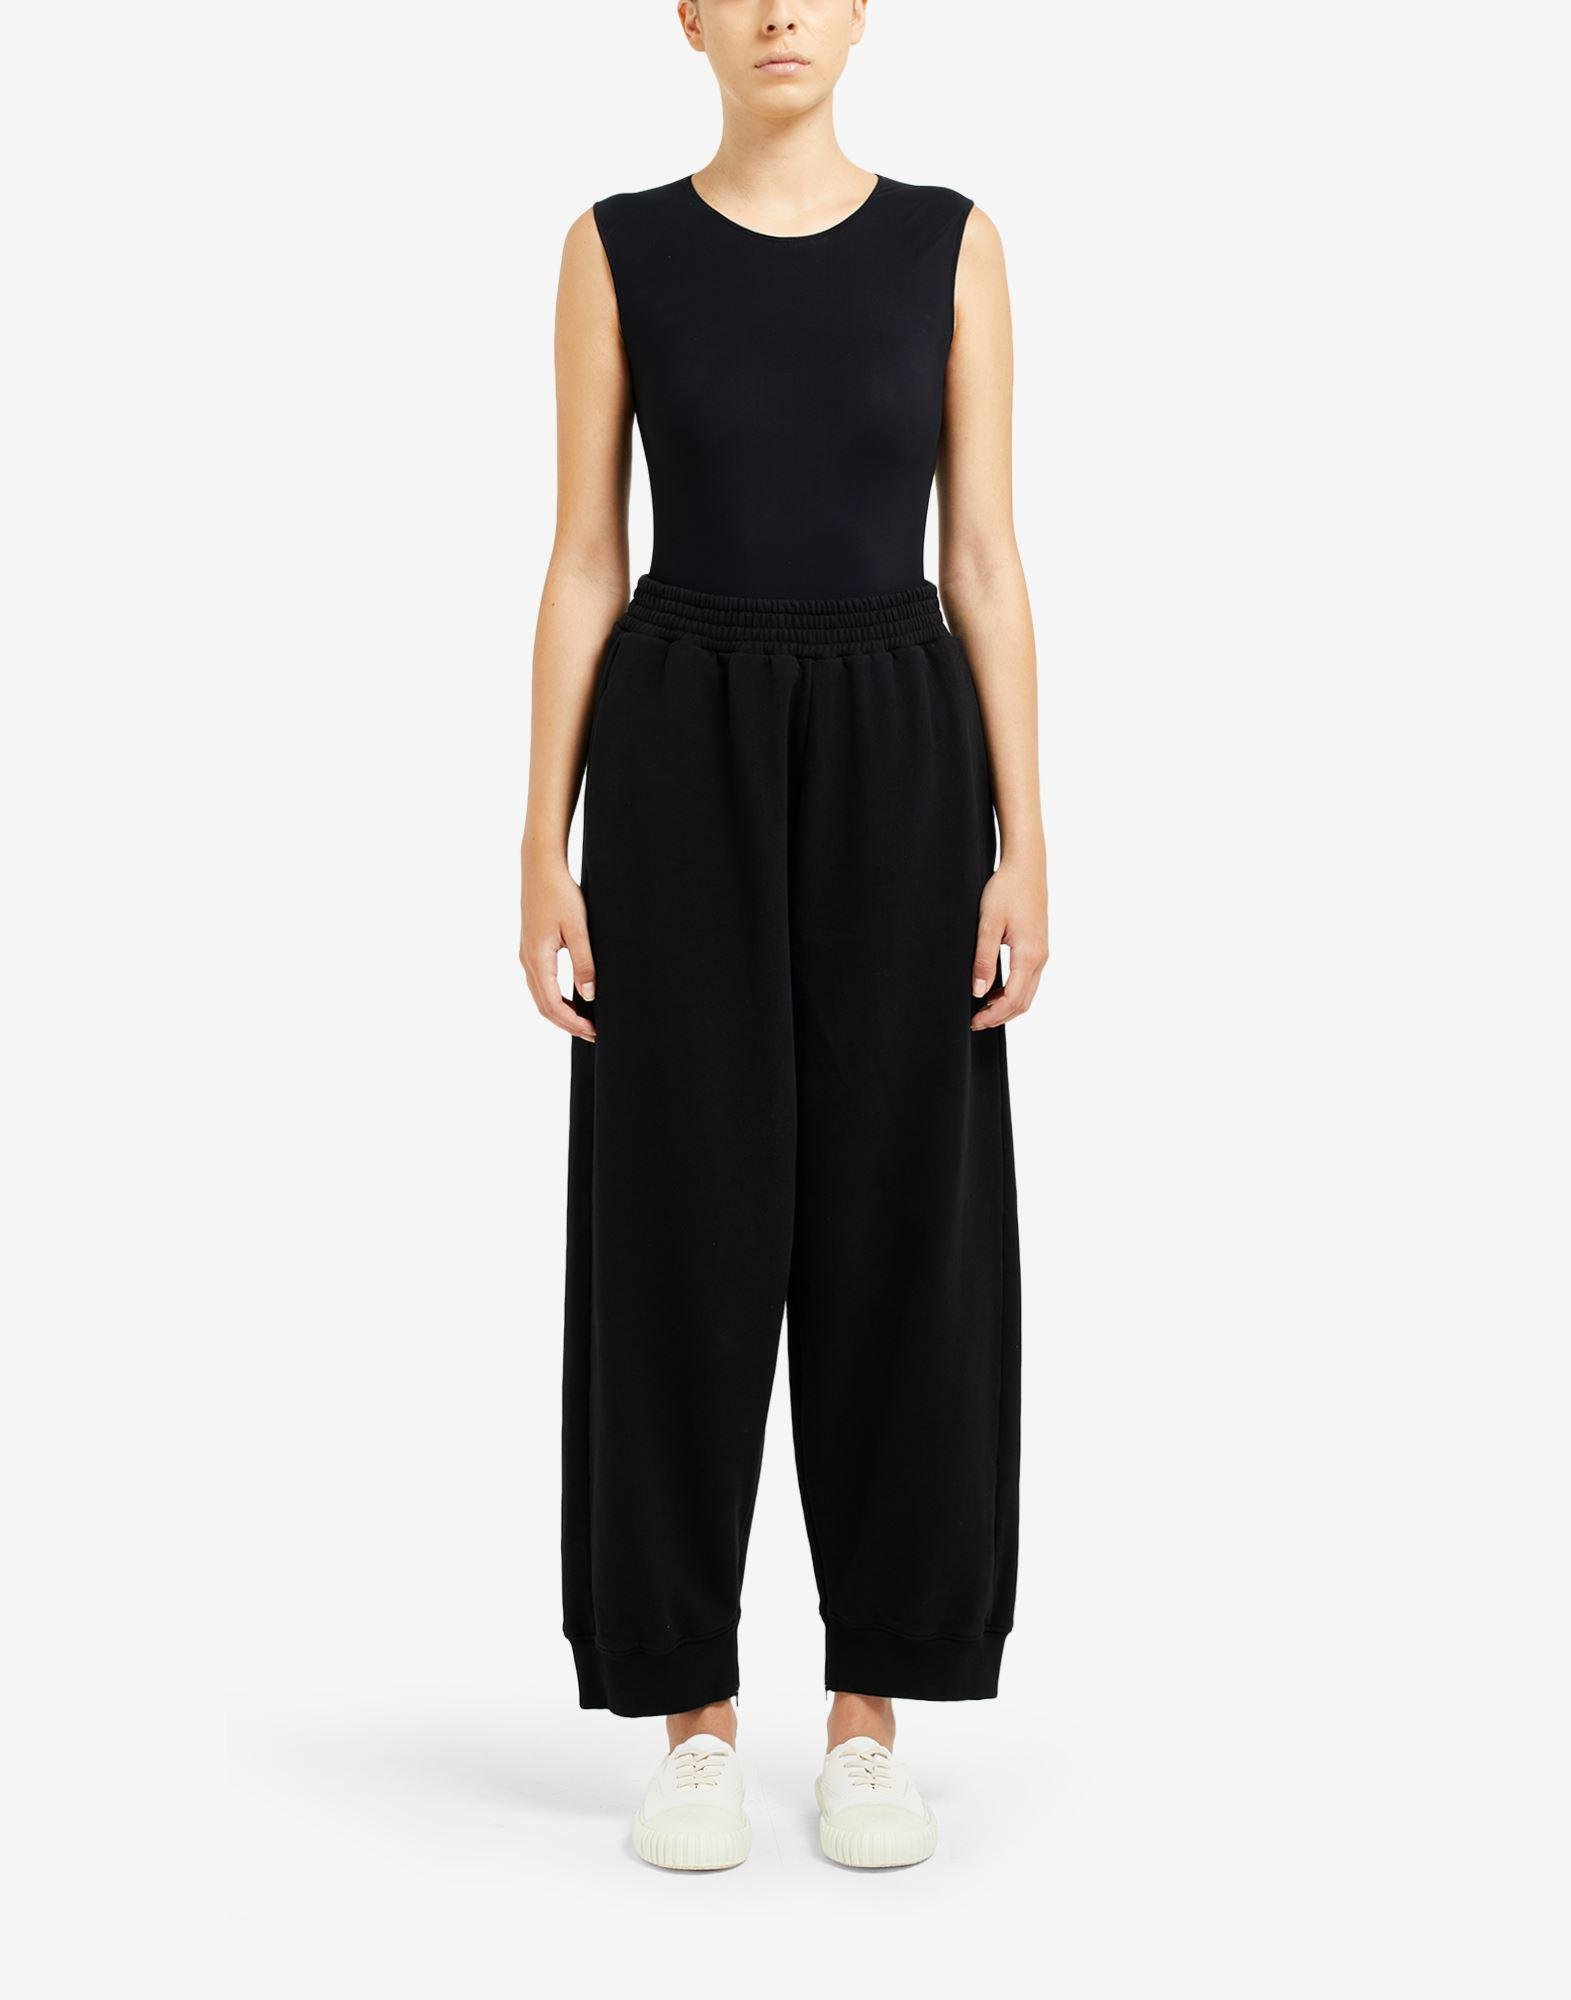 Oversized tracksuit trousers